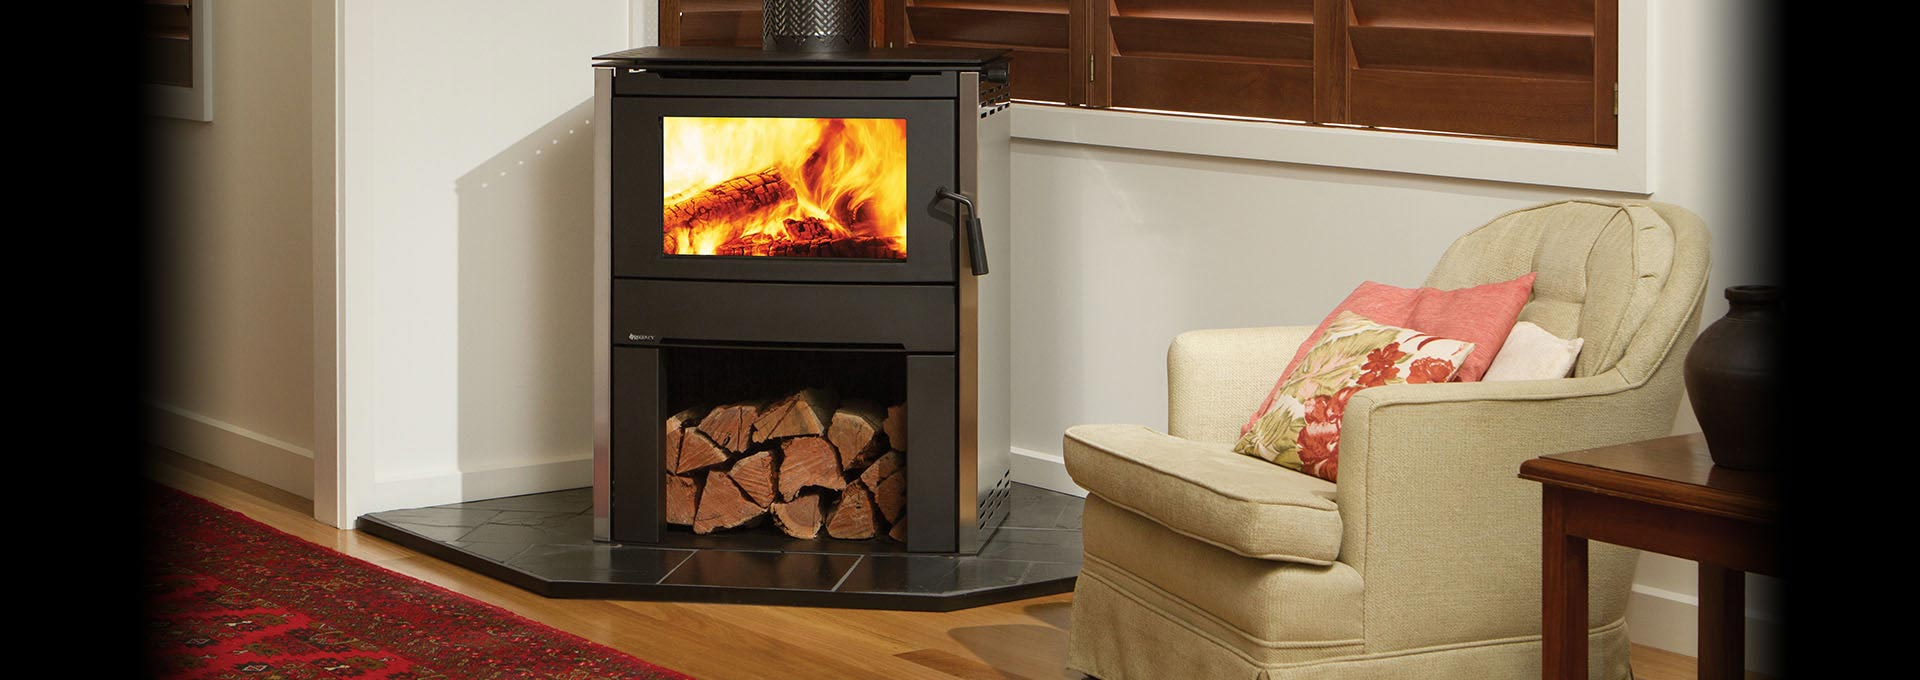 Regency is the leader in wood freestanding heaters through attention to heat